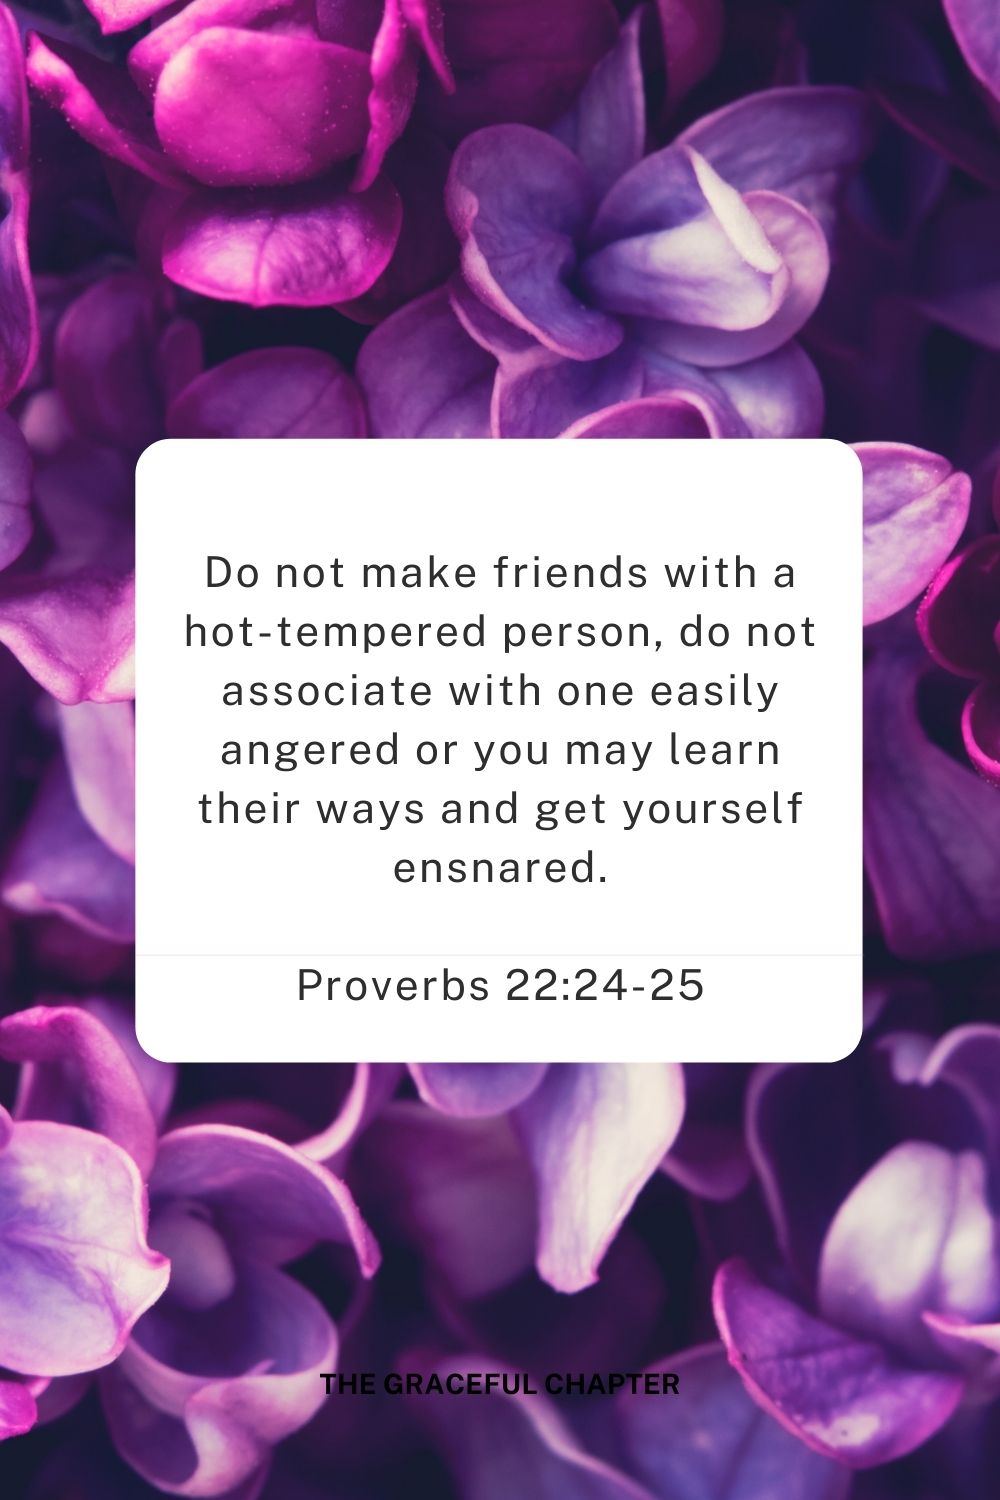 Do not make friends with a hot-tempered person, do not associate with one easily angered or you may learn their ways and get yourself ensnared. Proverbs 22:24-25